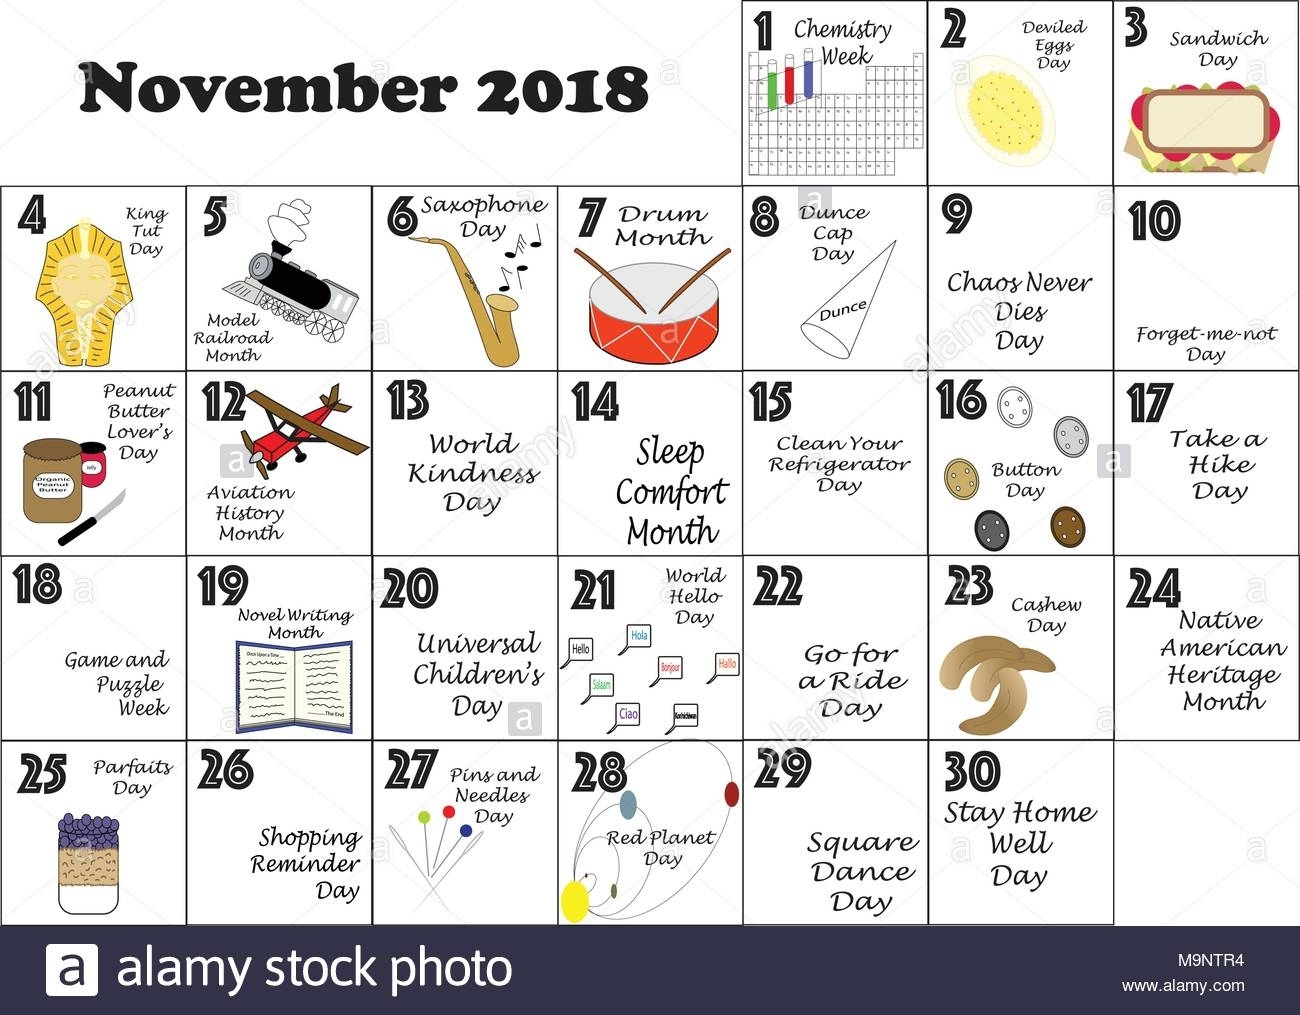 November 2018 Monthly Calendar Illustrated And Annotated With Daily Calendar Of Holidays And Celebrations